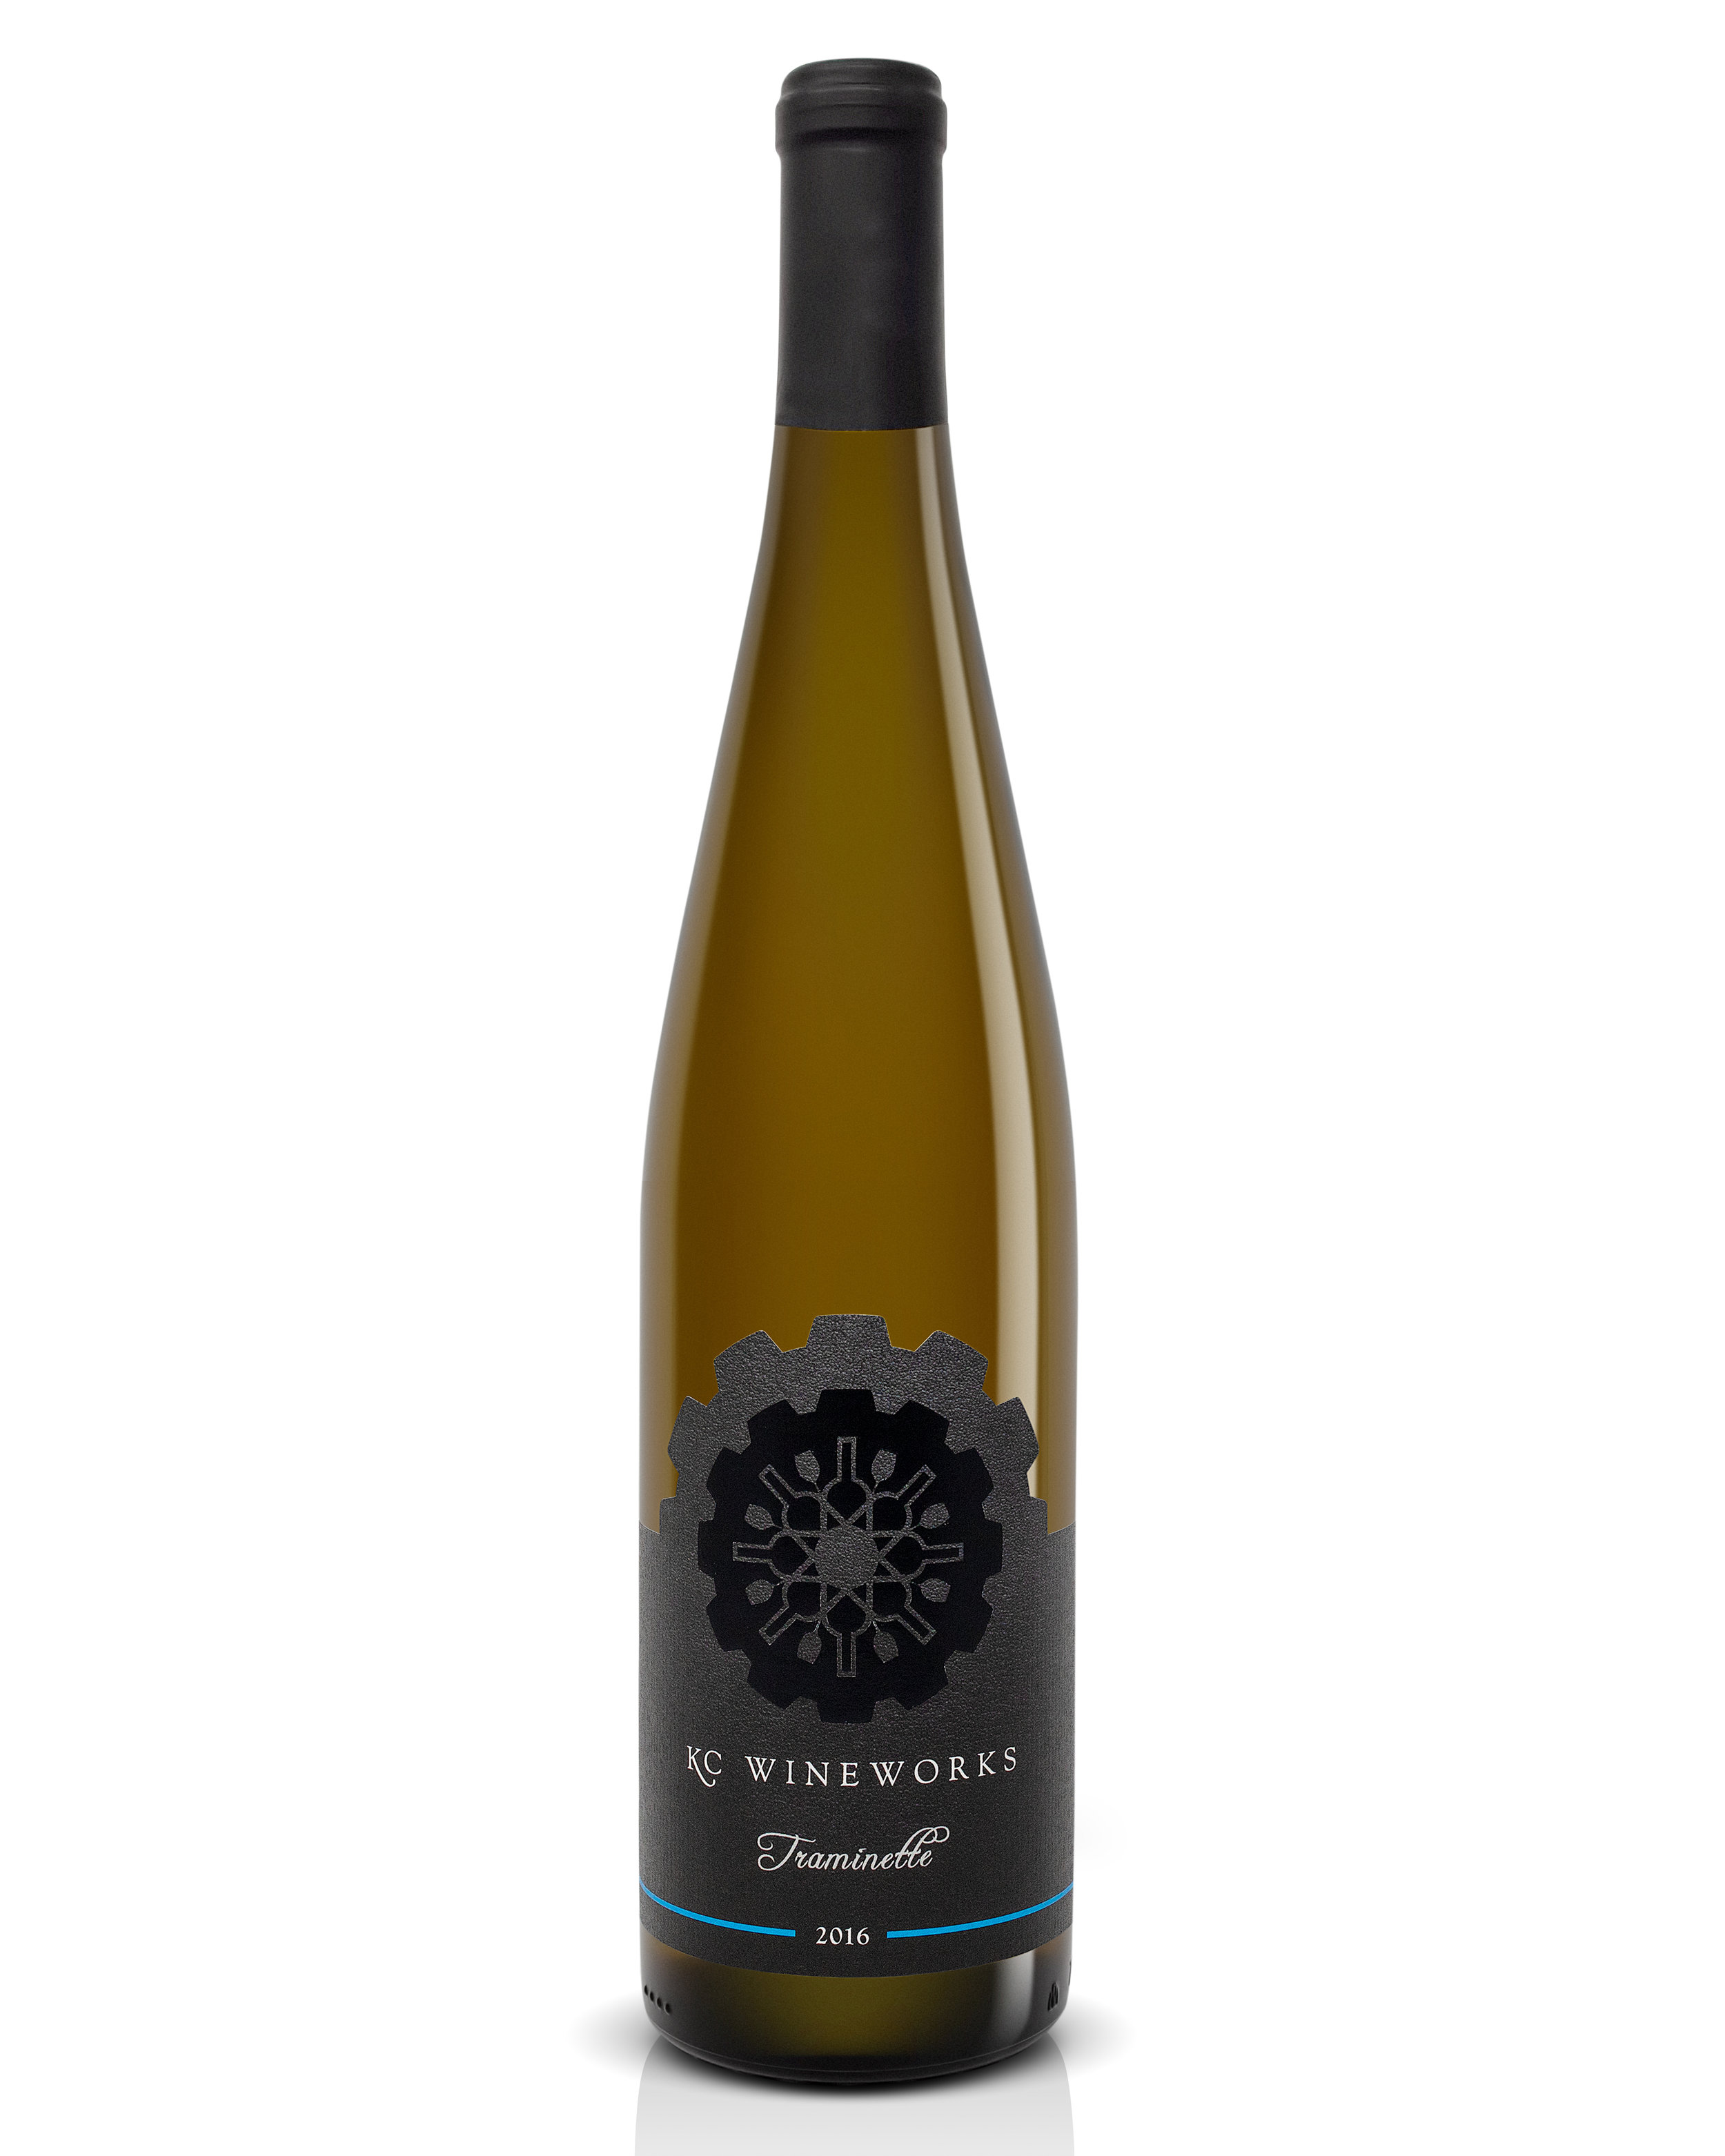 KC Wineworks Traminette | Adri Guyer Photo 01.jpg